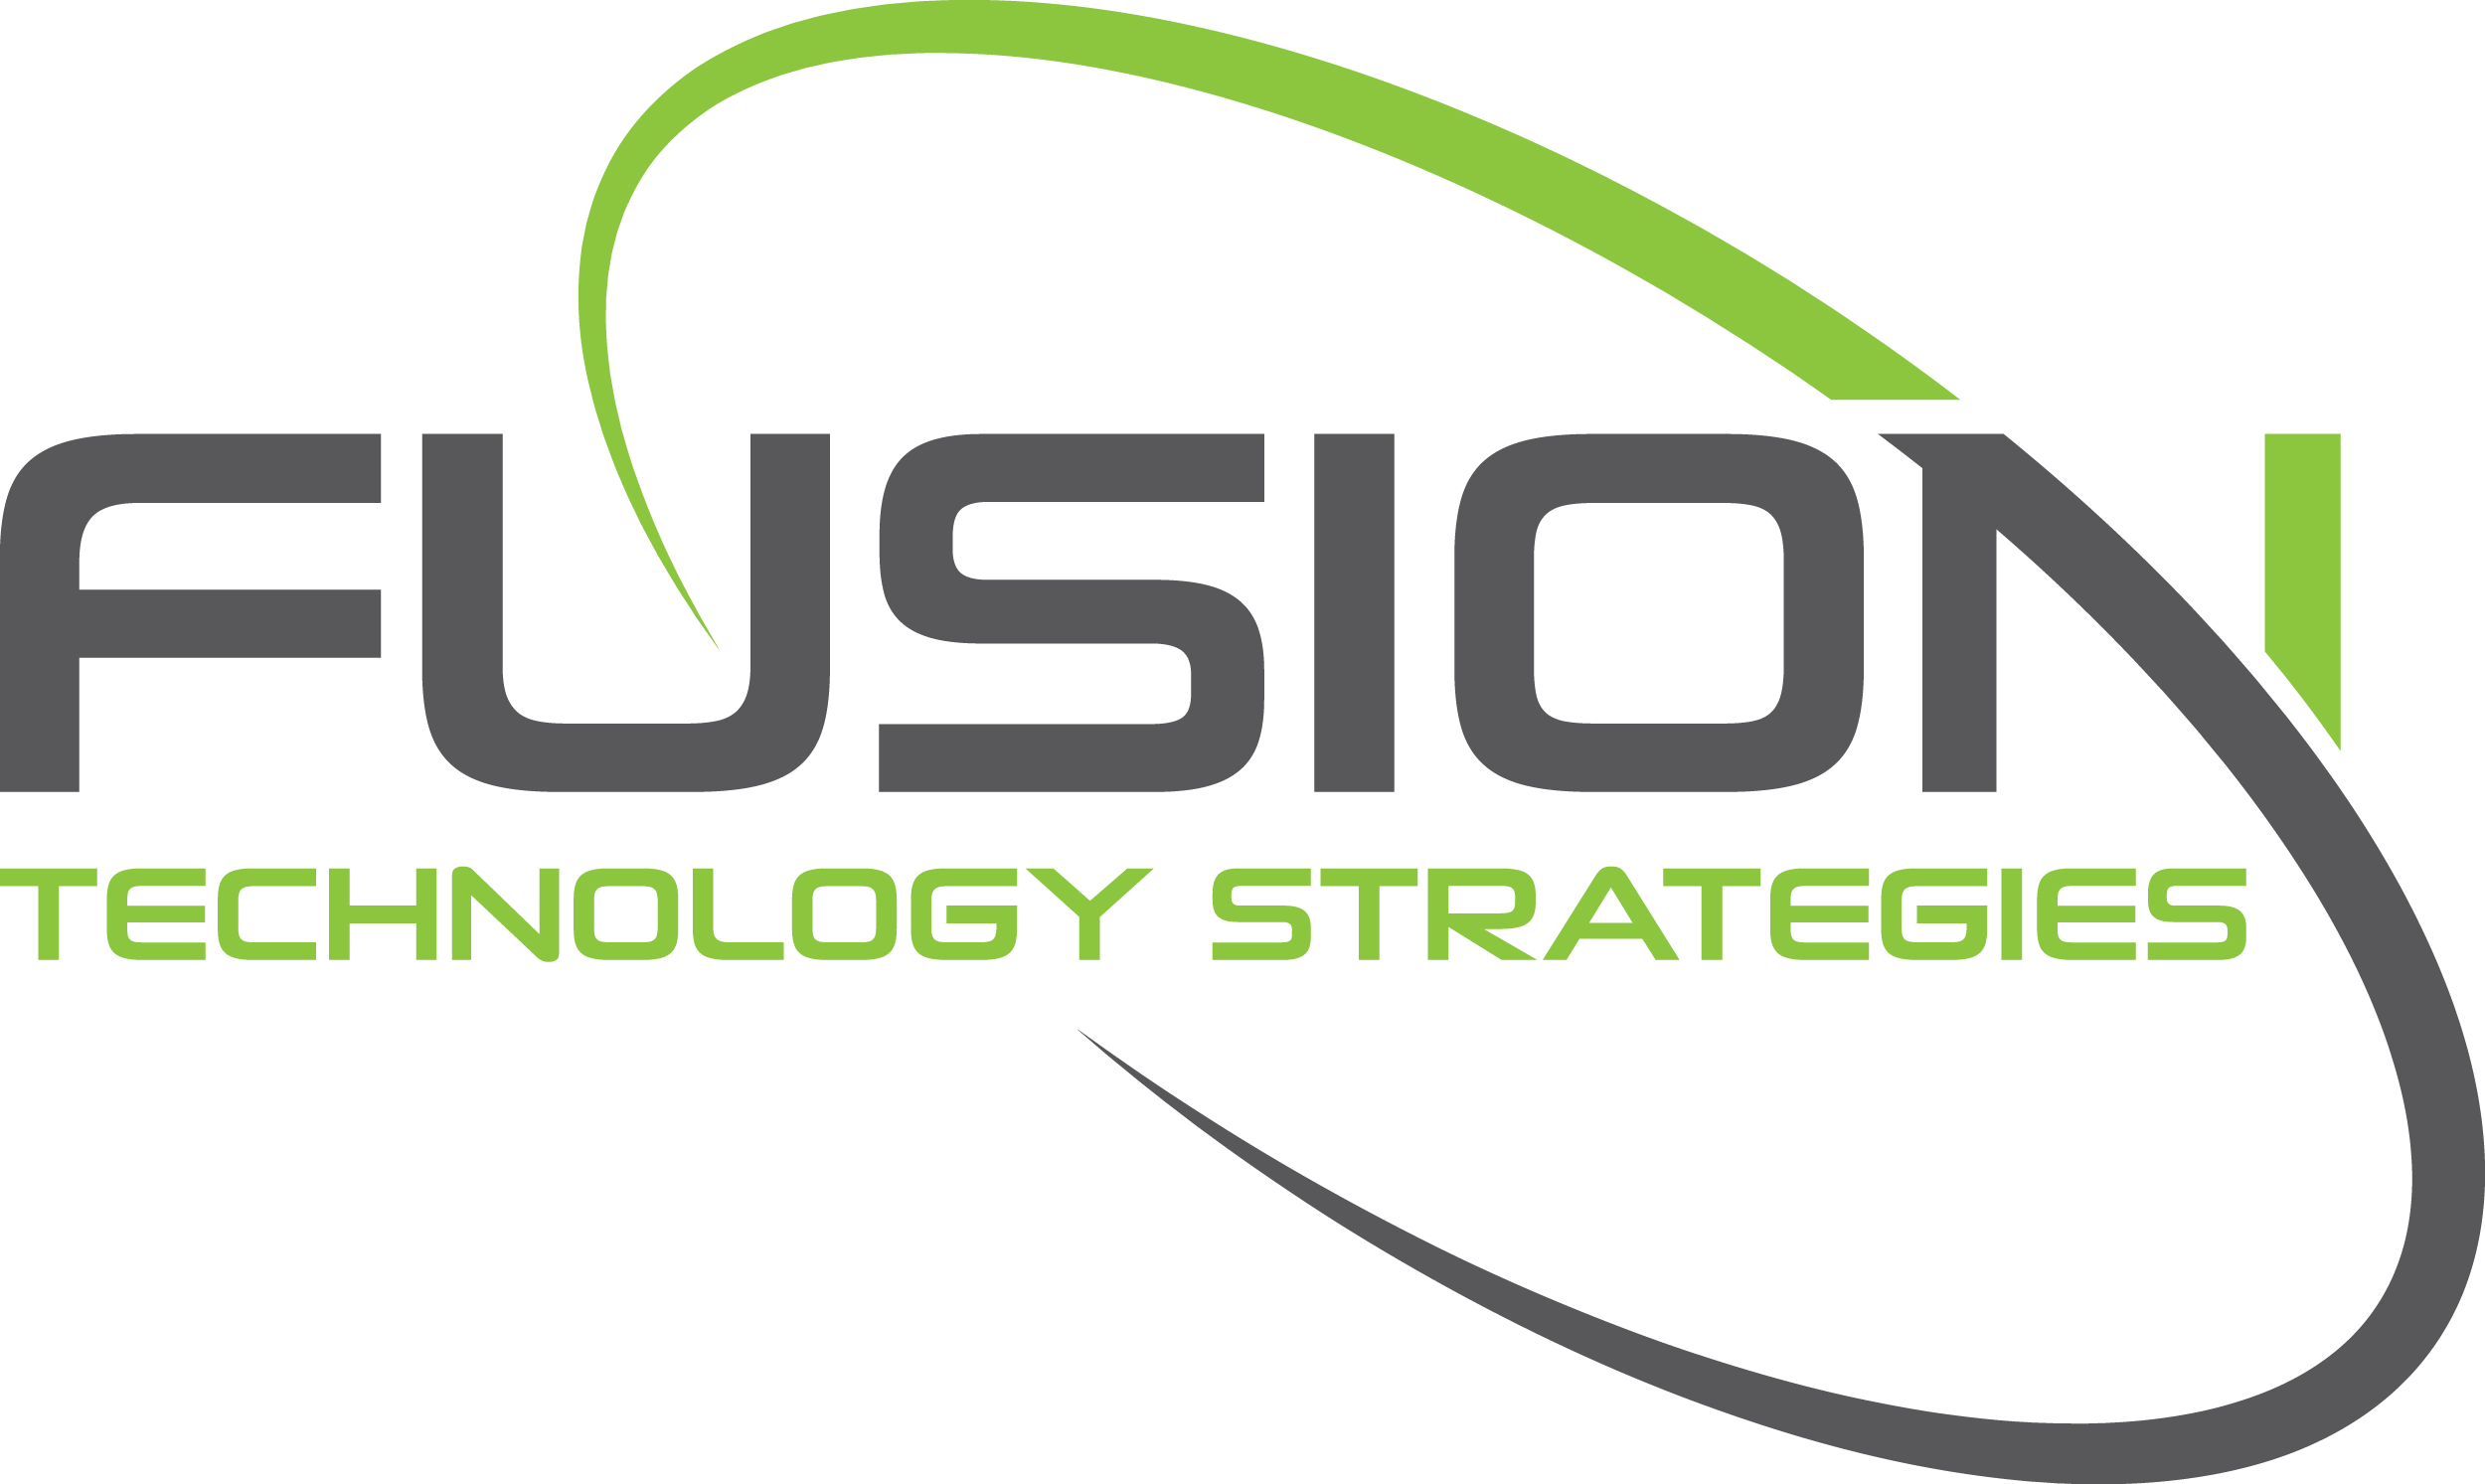 Fusion Technology Strategies Website